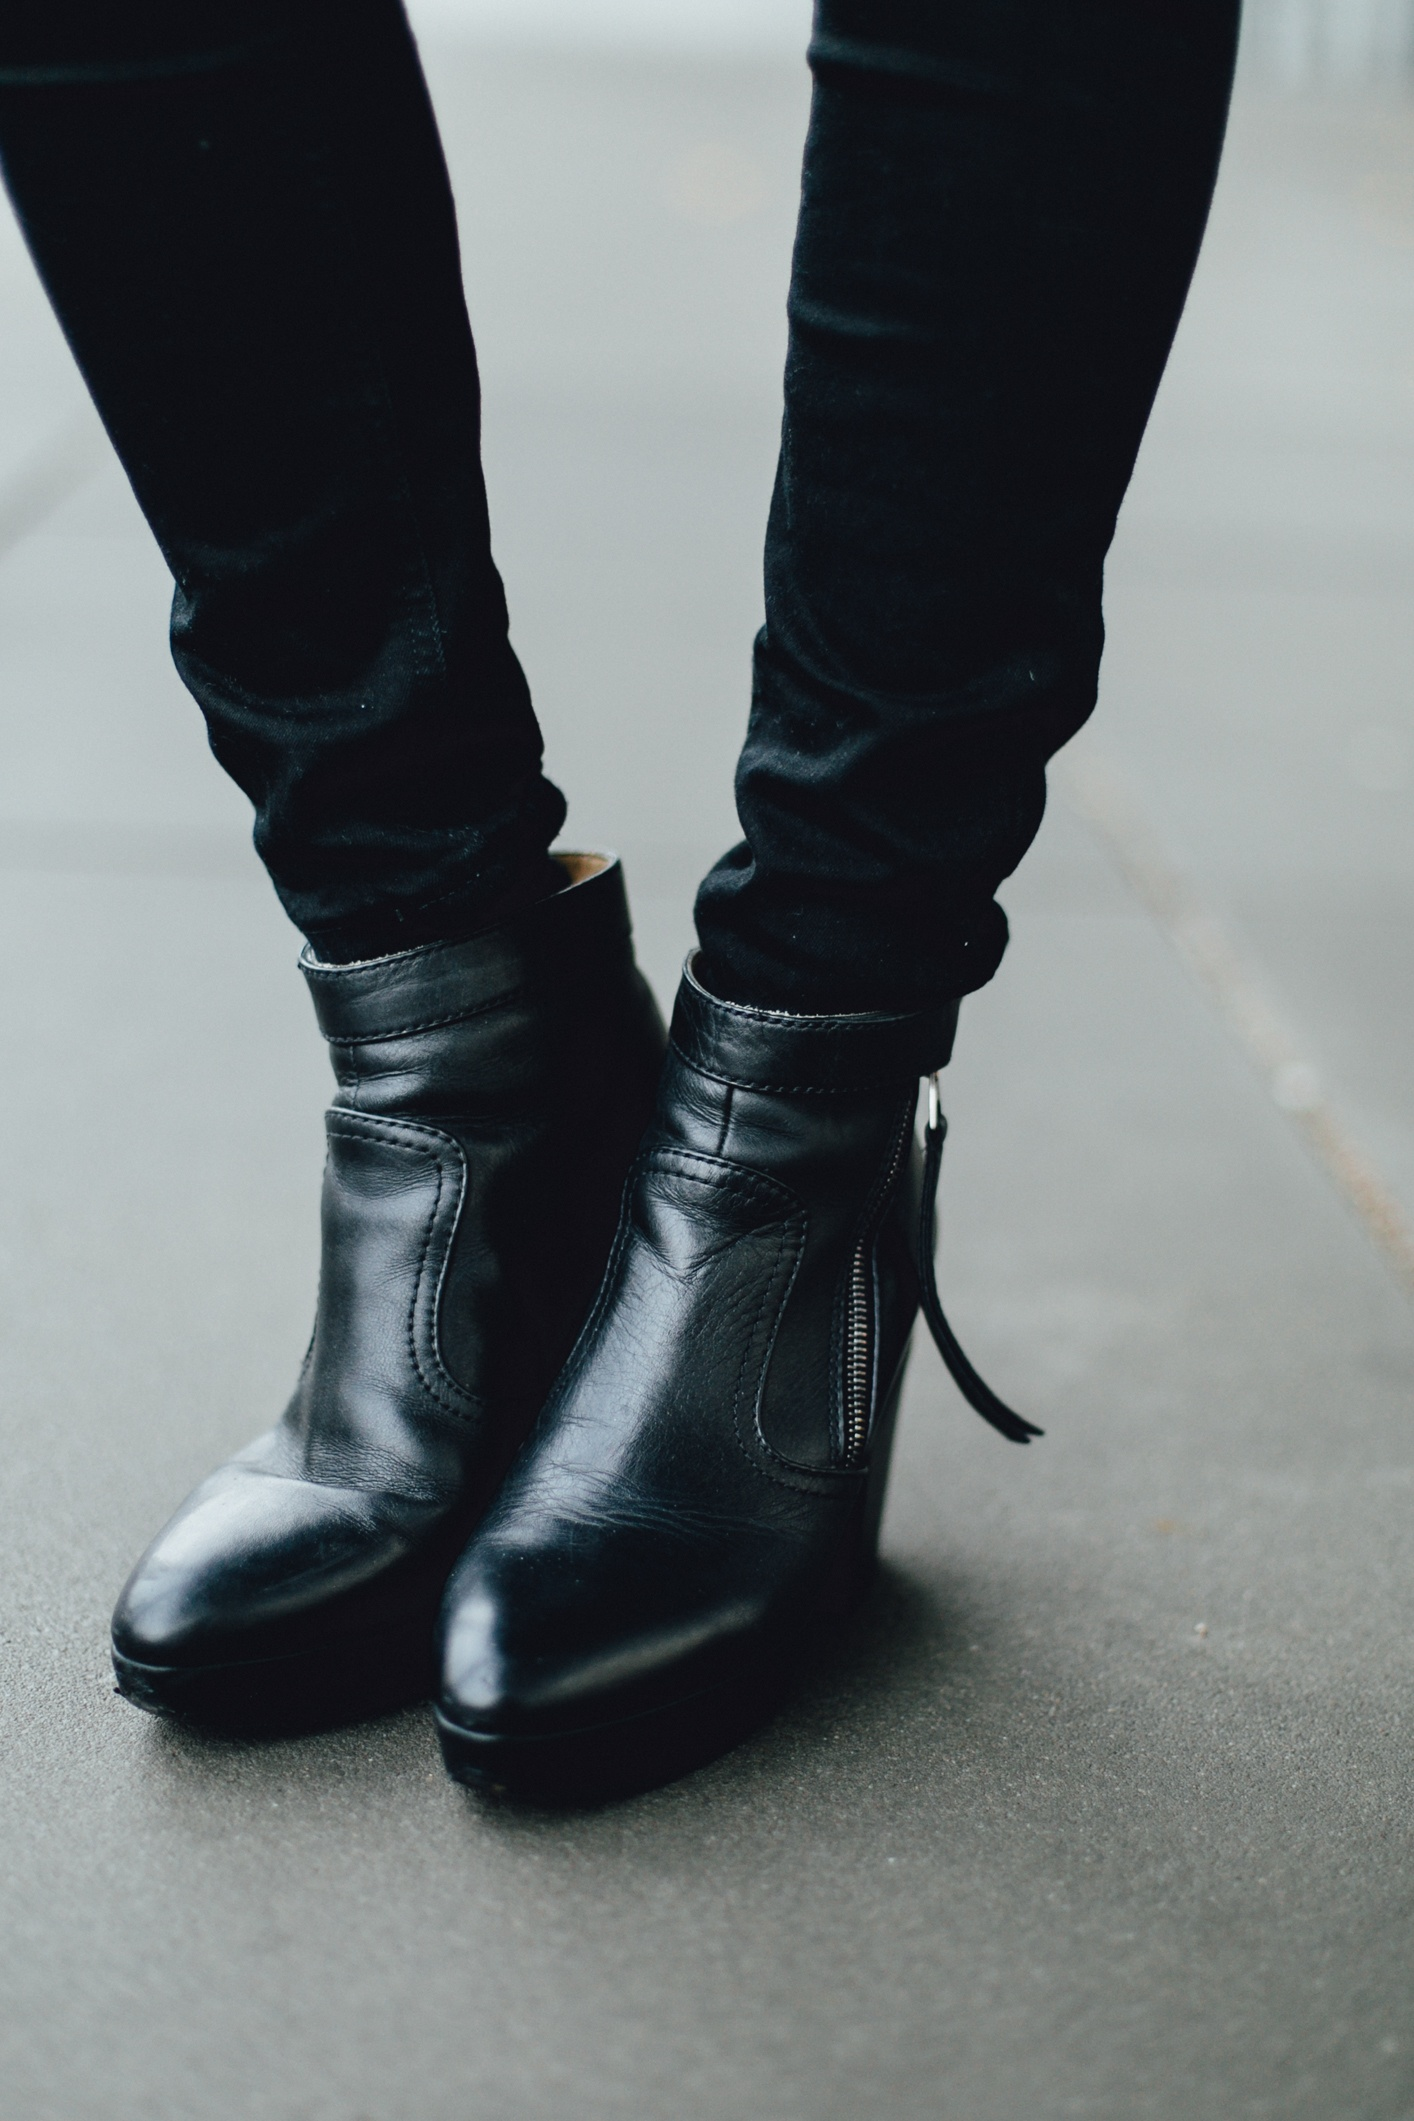 Acne_Track_Boots